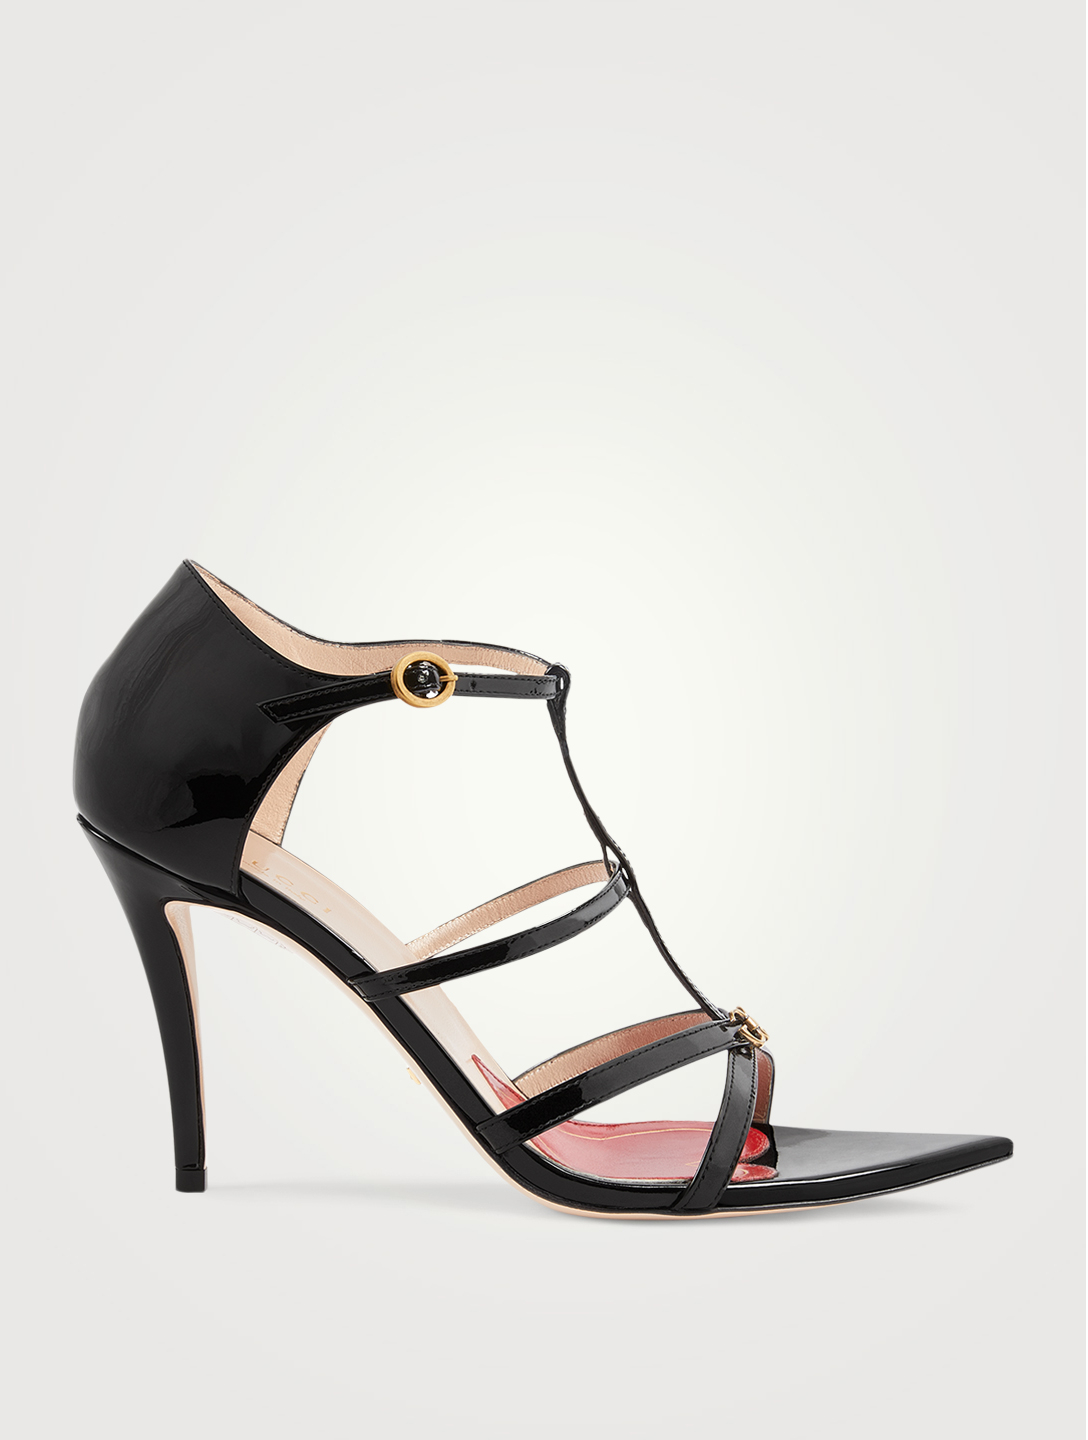 GUCCI Patent Leather Heeled Sandals With Double G Women's Black